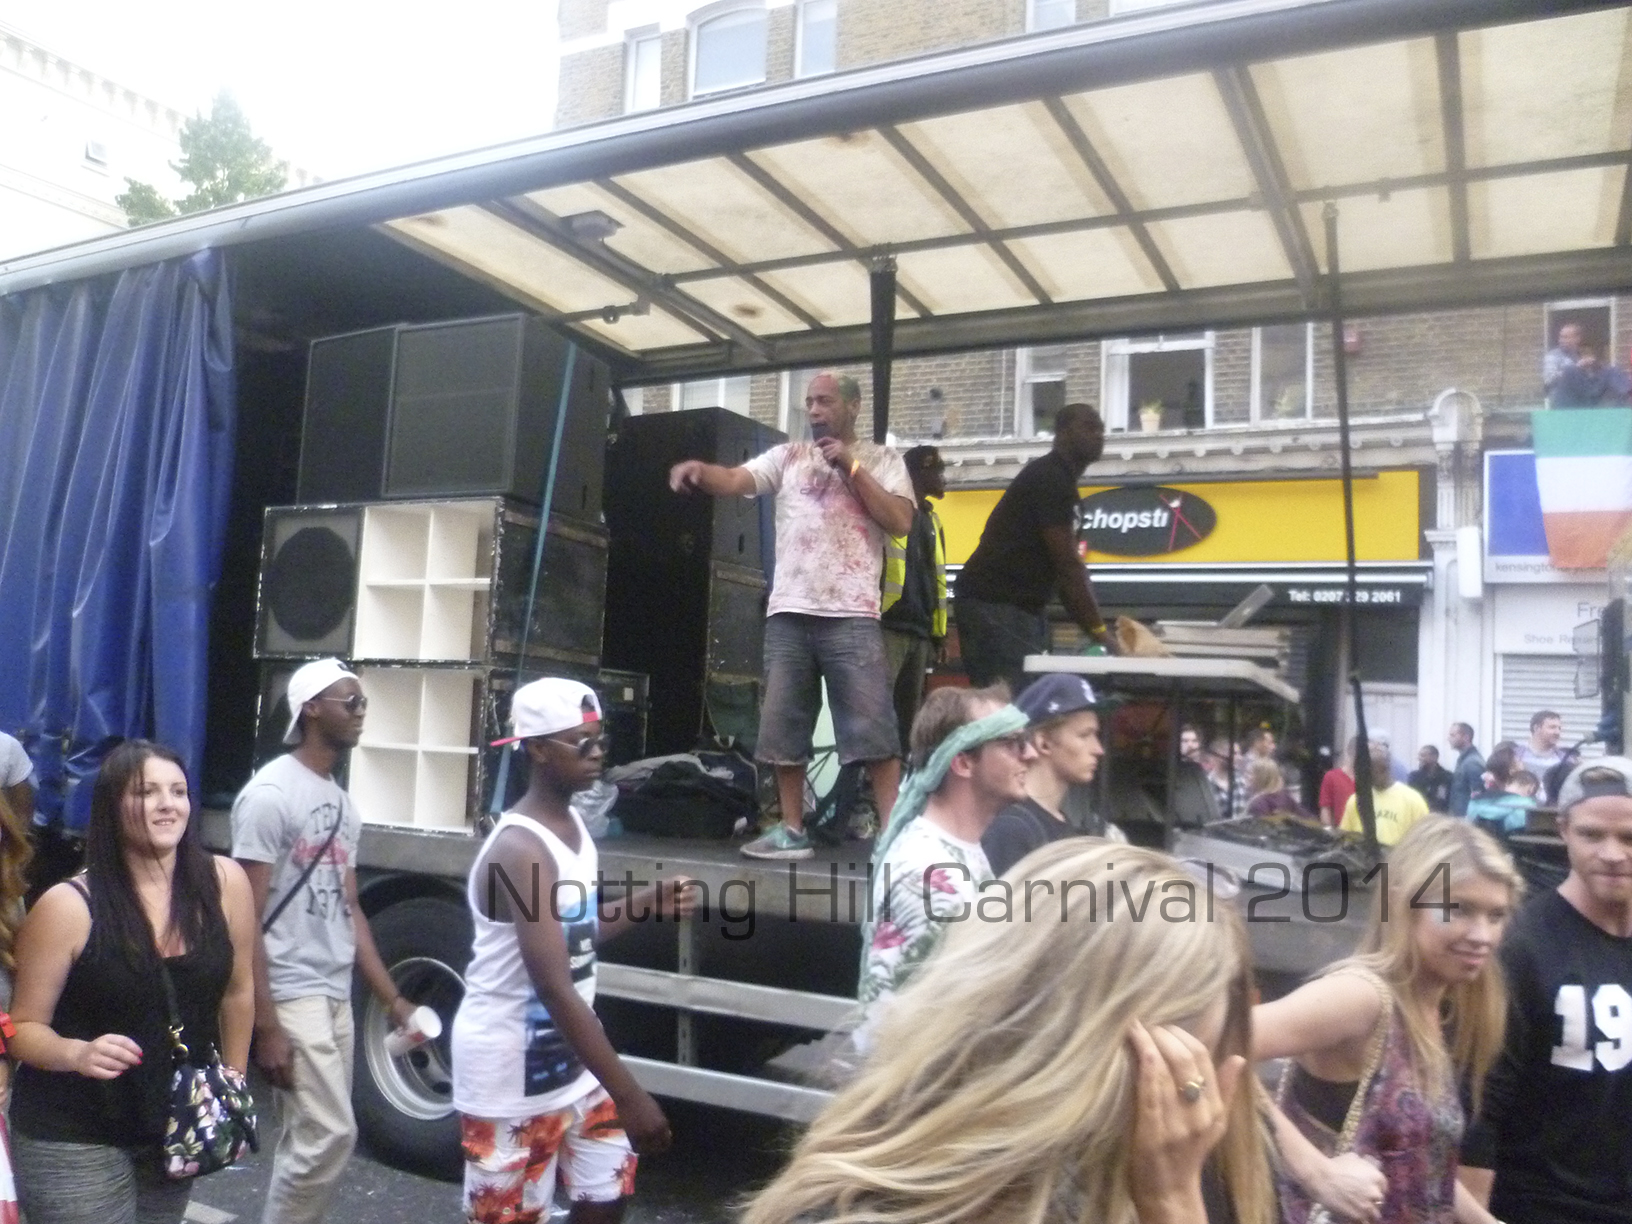 Notting-Hill-Carnival-2014-Float-Sound-System-2